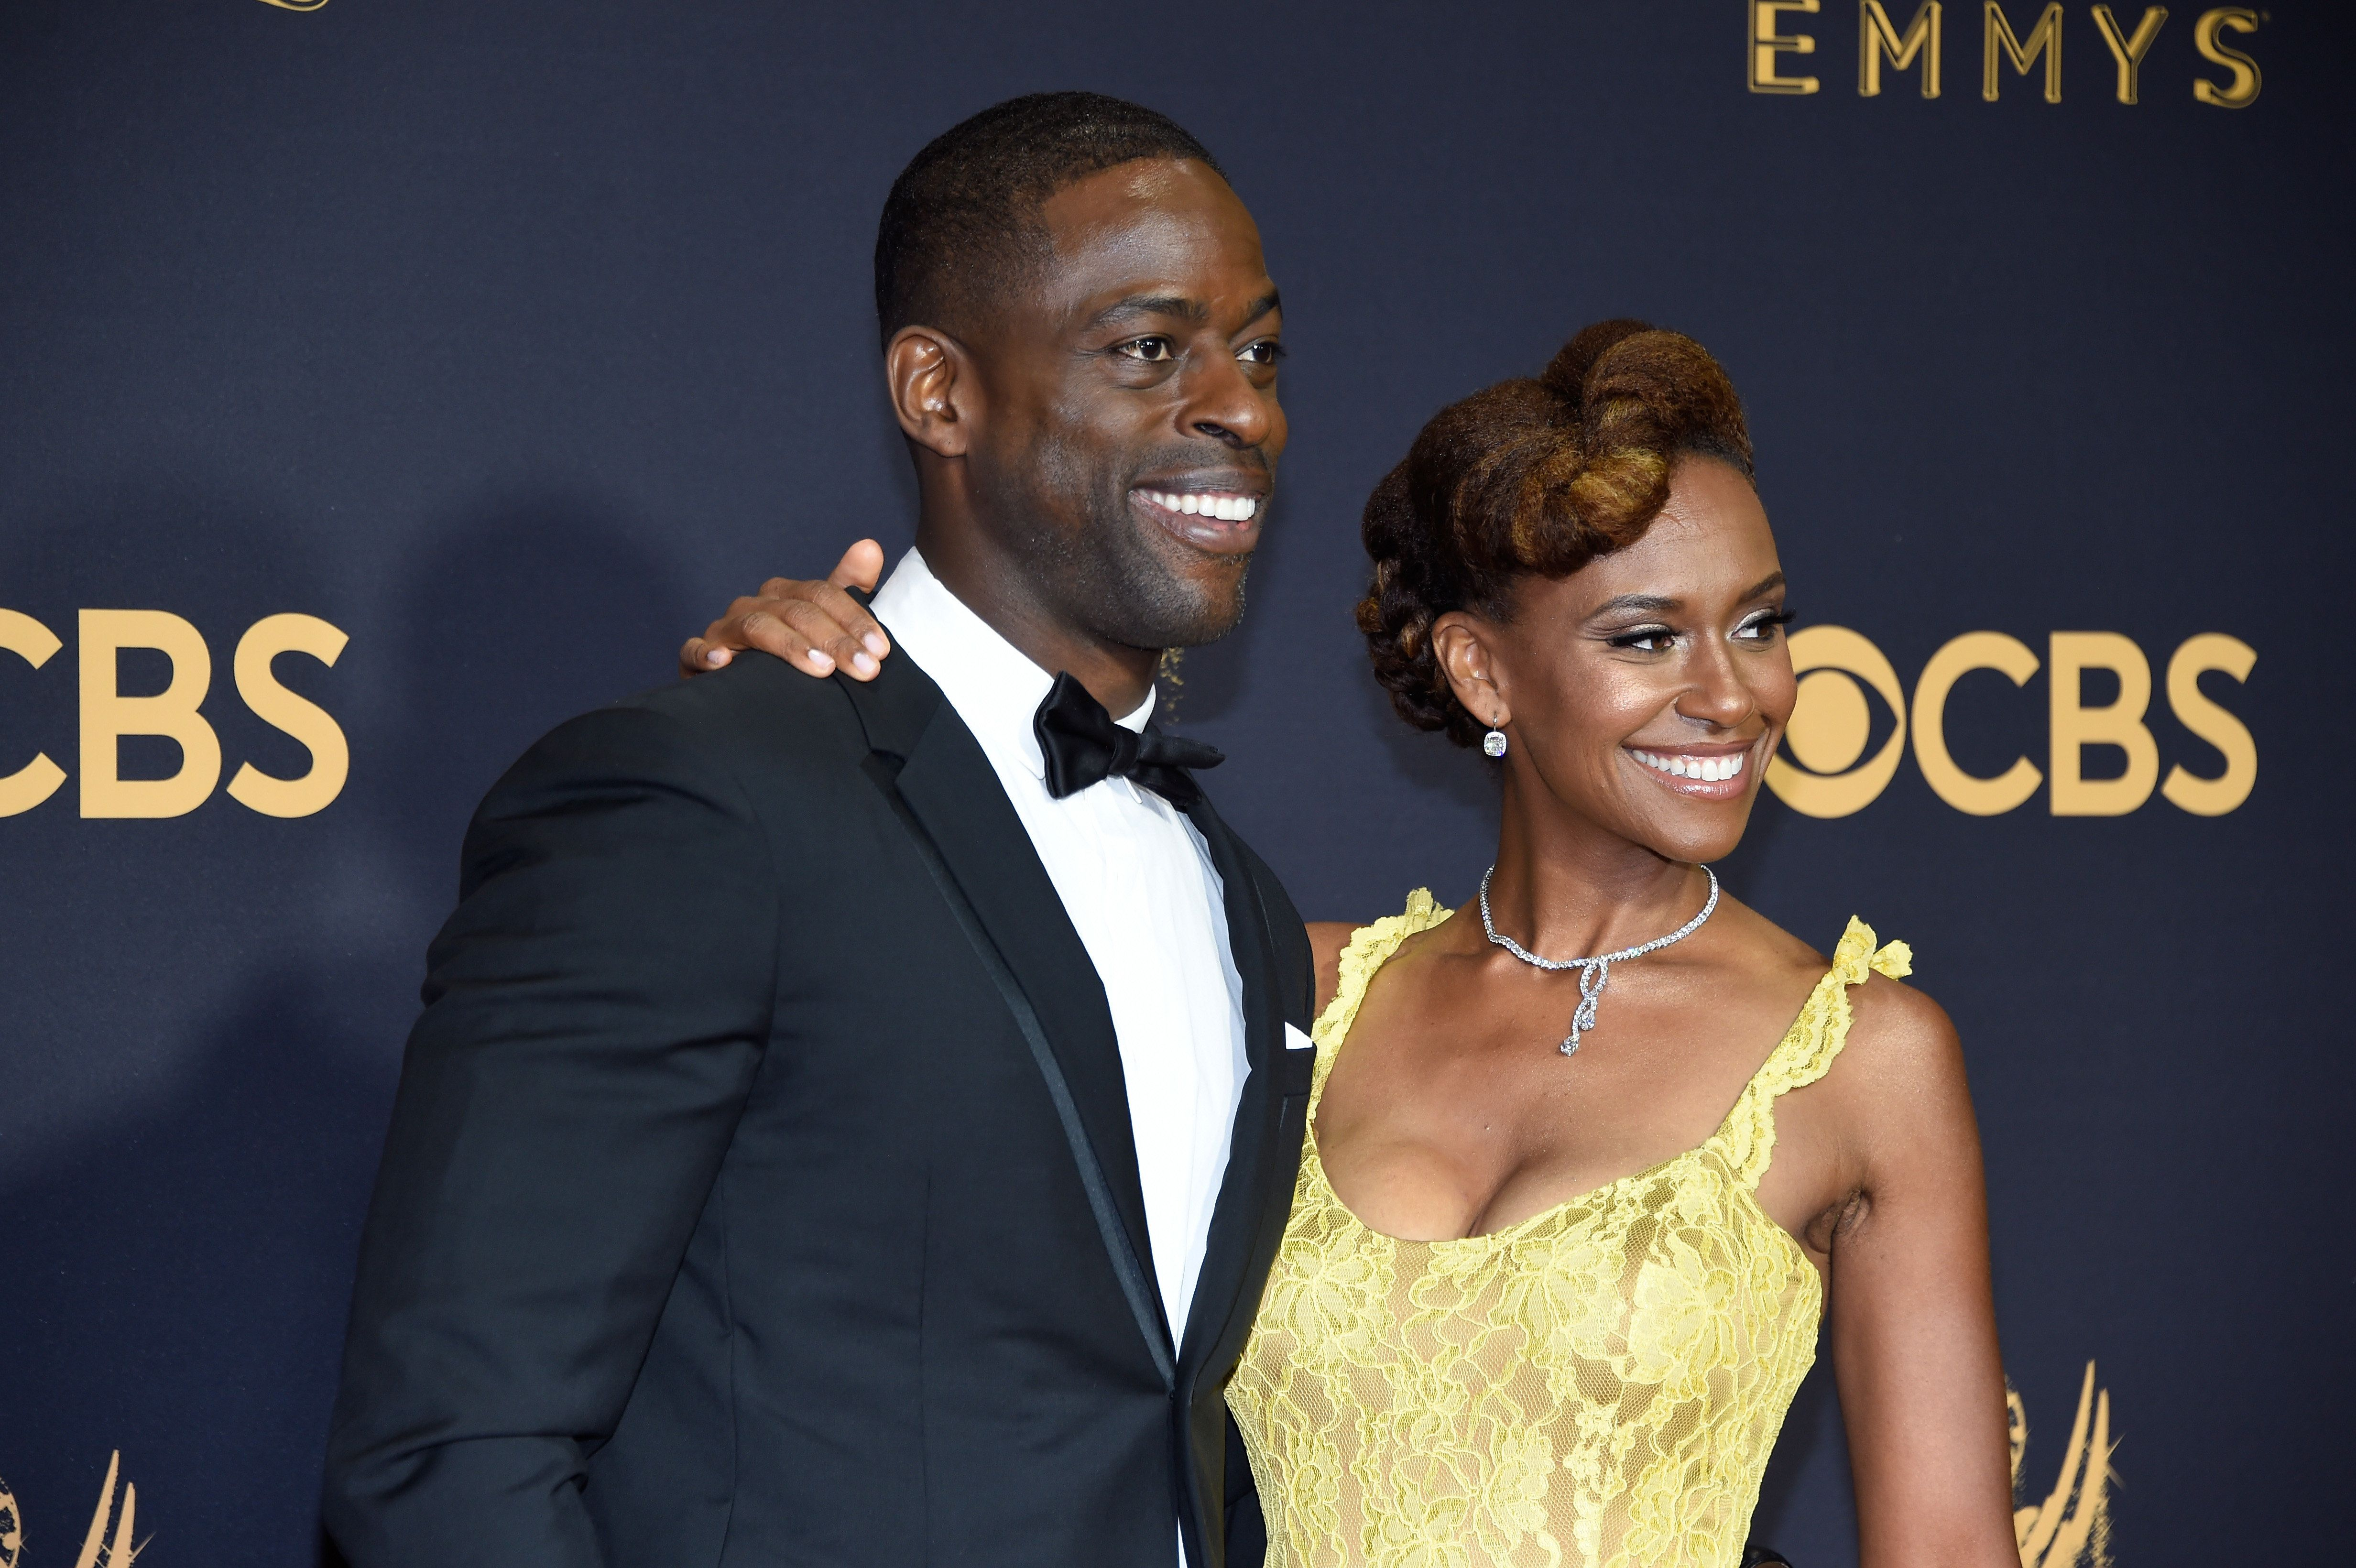 Actor Sterling K. Brown and his wife, actress Ryan Michelle Bathe, welcomed their first son at home about six years ago. The